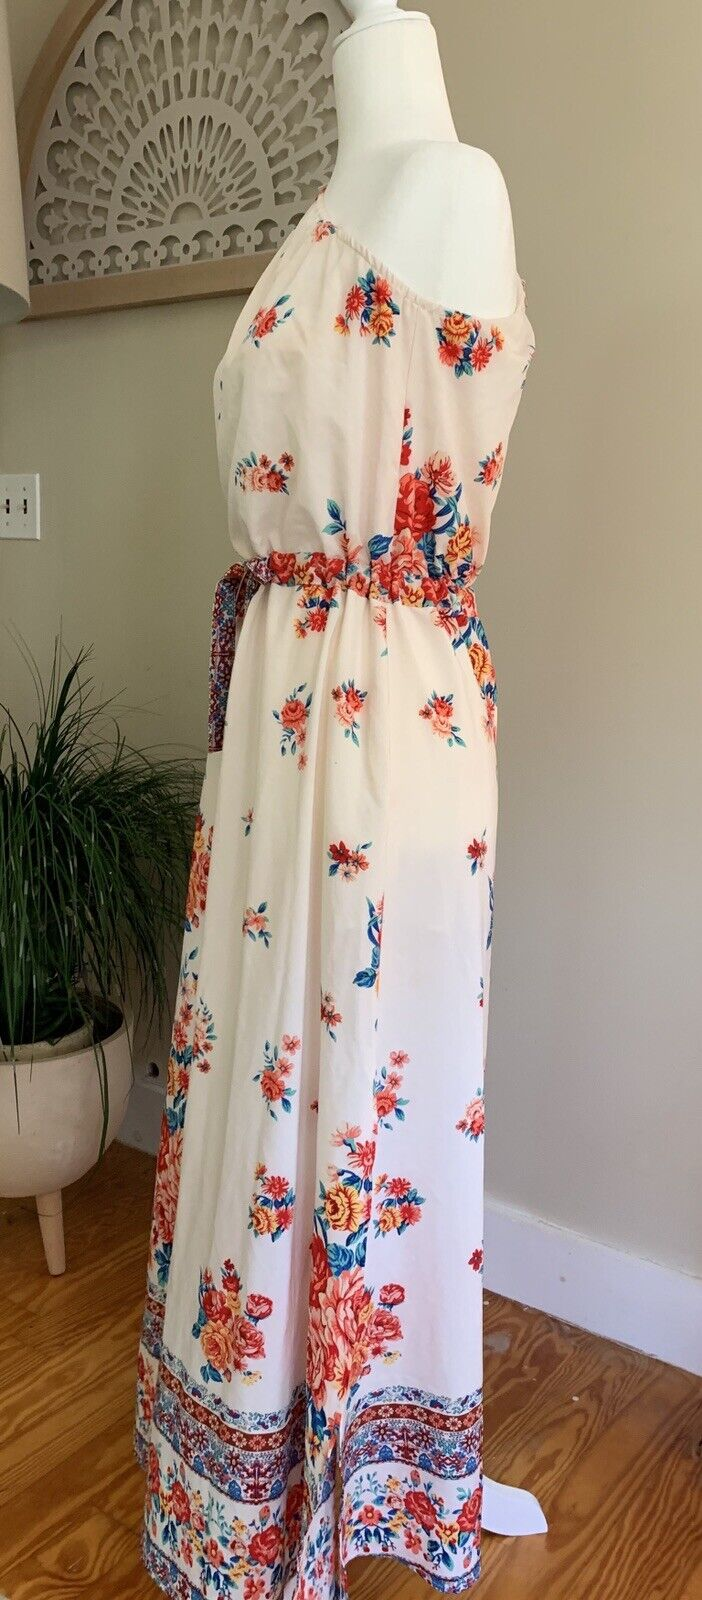 Catalina Dress in Floral MISA Los Angeles Sz S - image 5